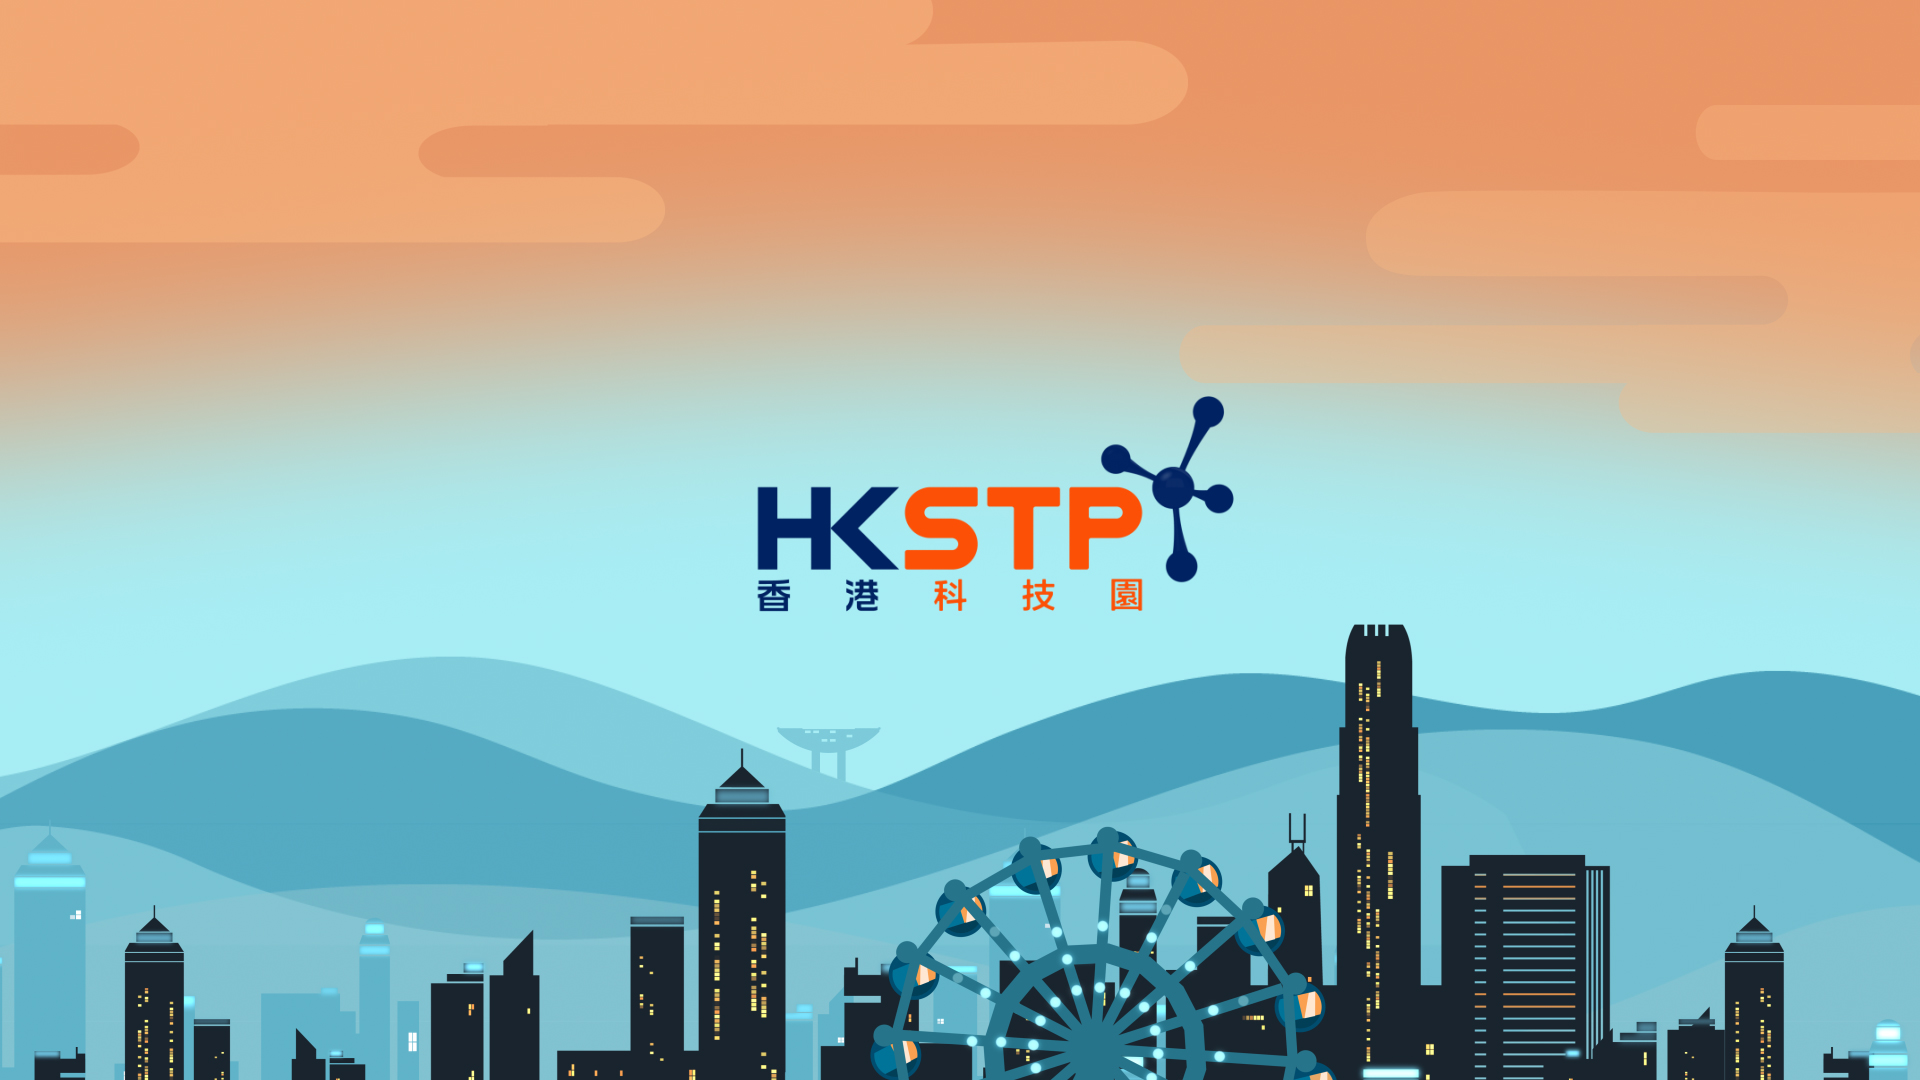 Hong Kong Motion Graphics, Motion Graphics Design, Hong Kong Video Production, Hong Kong Animation Production, Animation, Video Production, Explainer Video, Inforgraphics, Promotional Video, Promotion, Science, Technology, 2D Animation, Educational Video